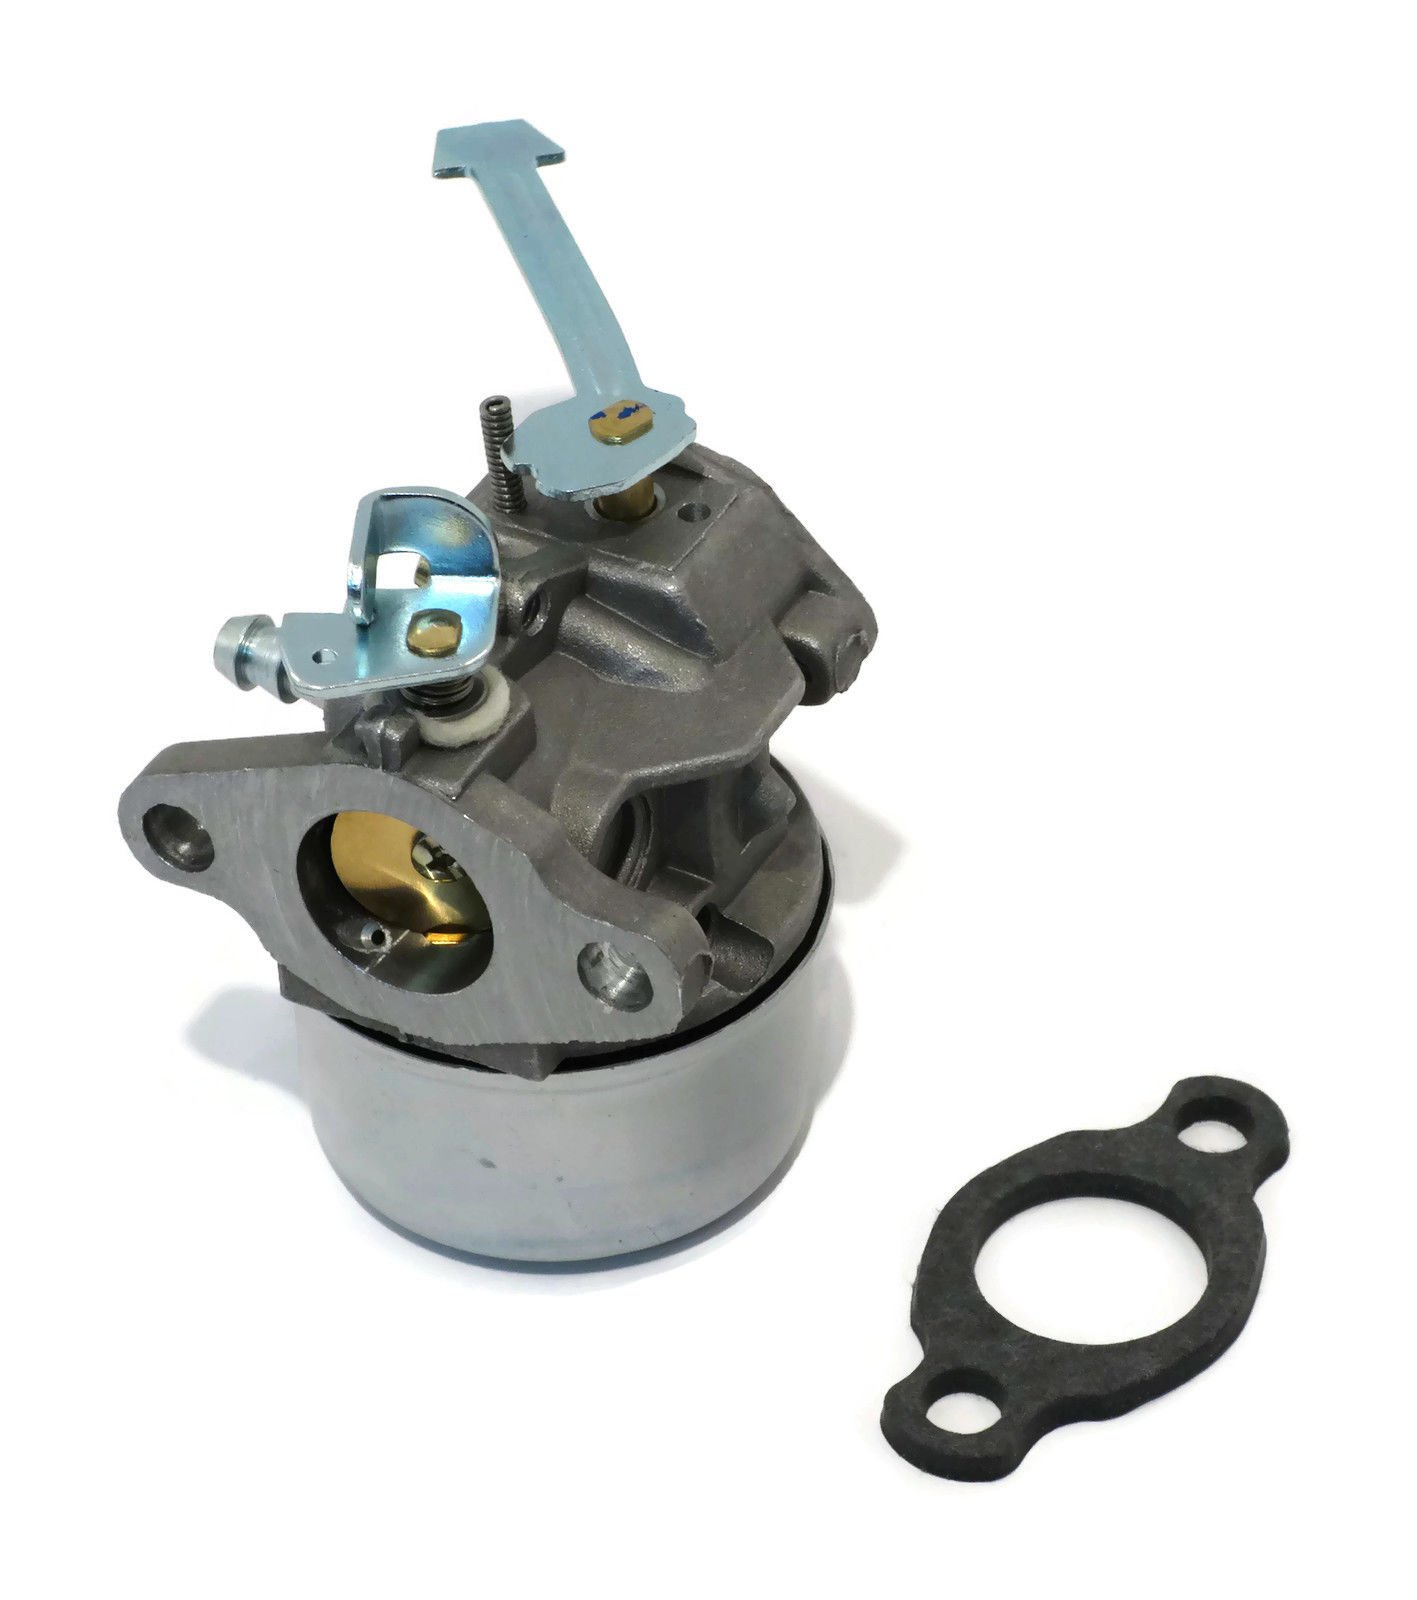 The ROP Shop Carburetor Carb for Toro Powerlite CCR1000 38190 38191 38195 38196 38400 38405 by The ROP Shop